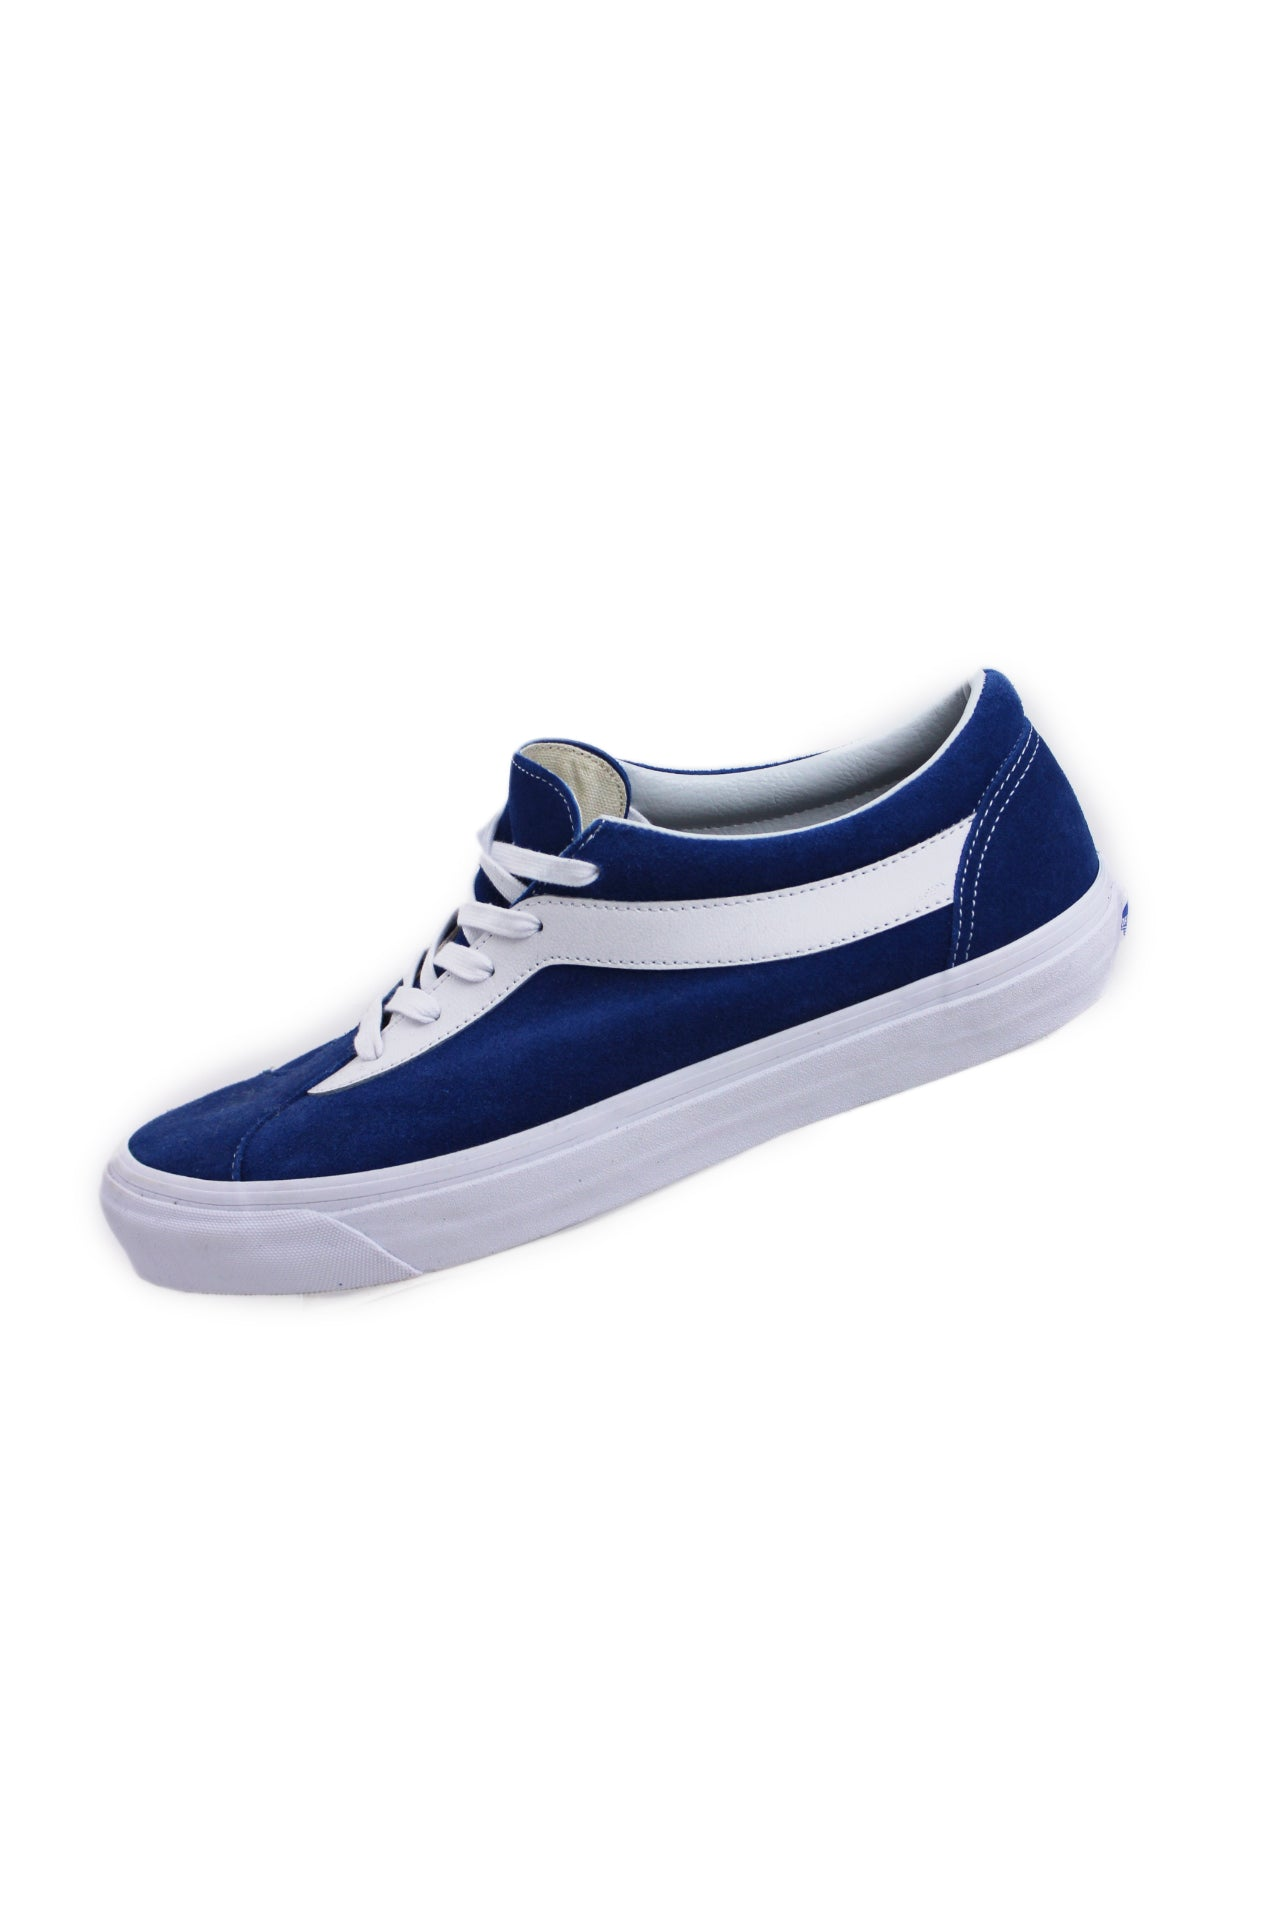 vans royal blue/white suede shoes. features large side stripe at sides, logo tab at heel, top flat lace closure, and a waffle grip sole.